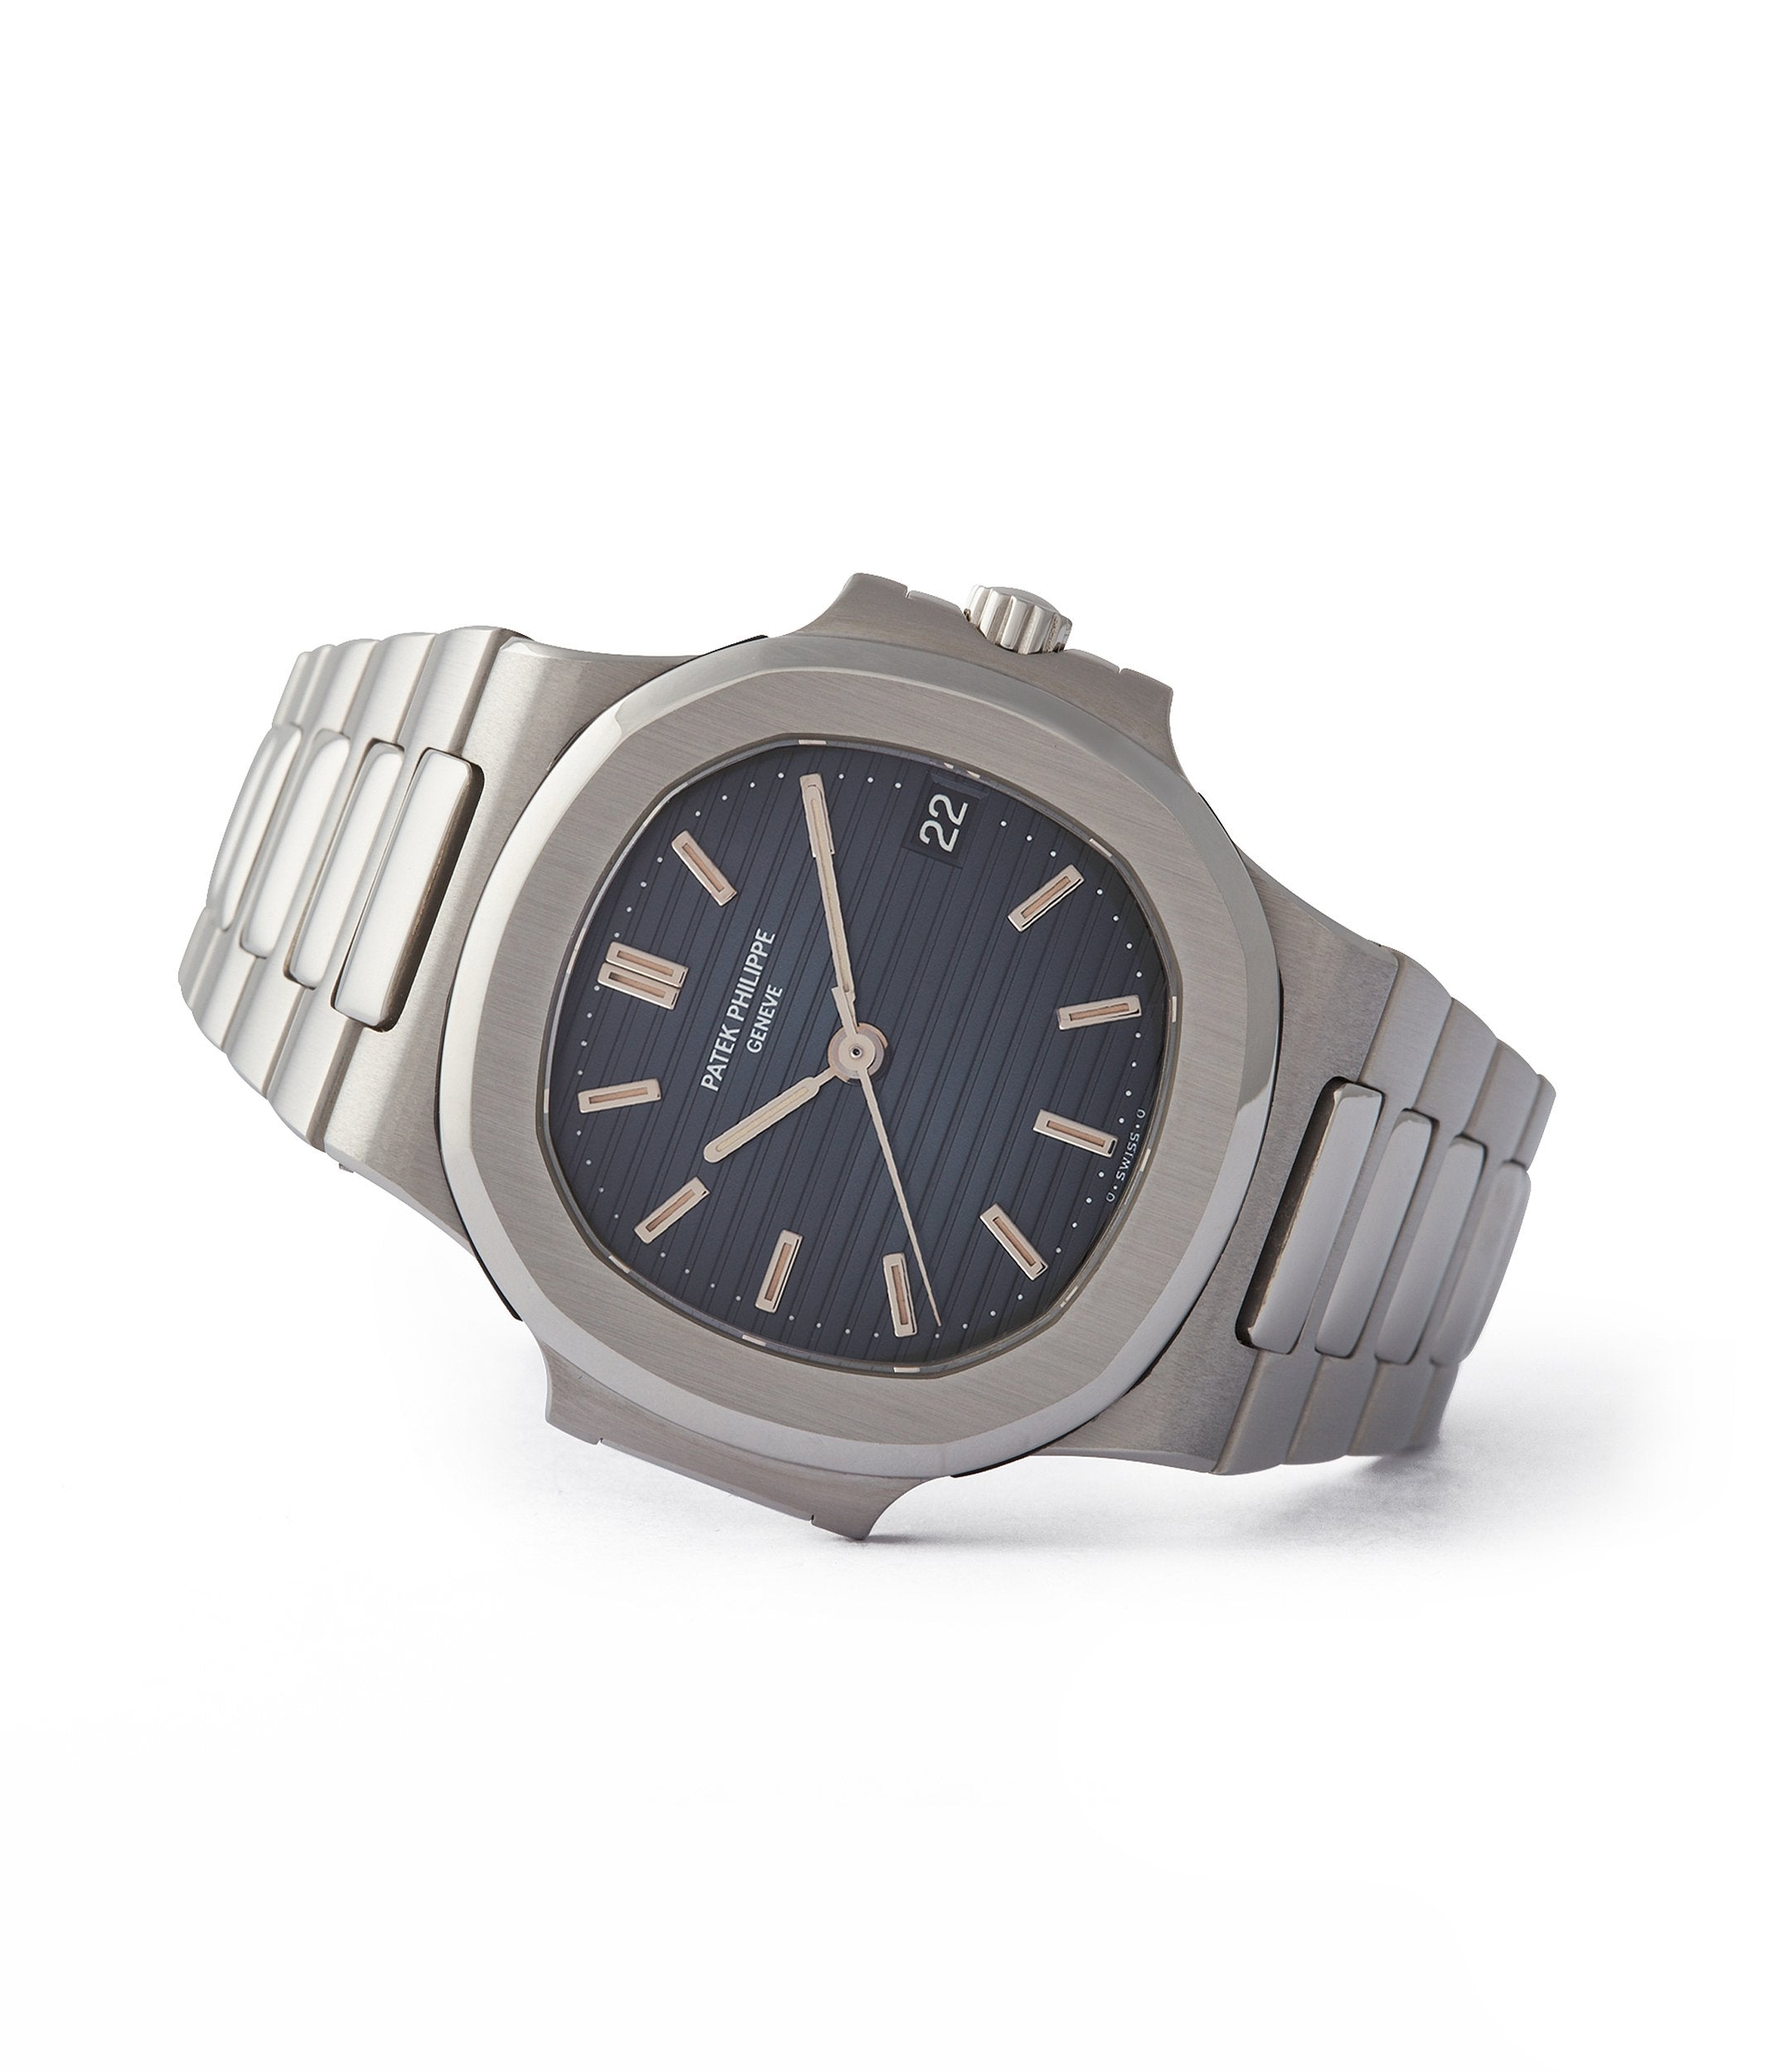 side-shot collectable Patek Philippe Nautilus 3800 Sigma dial steel luxury sports watch for sale online A Collected Man London UK specialist rare watches